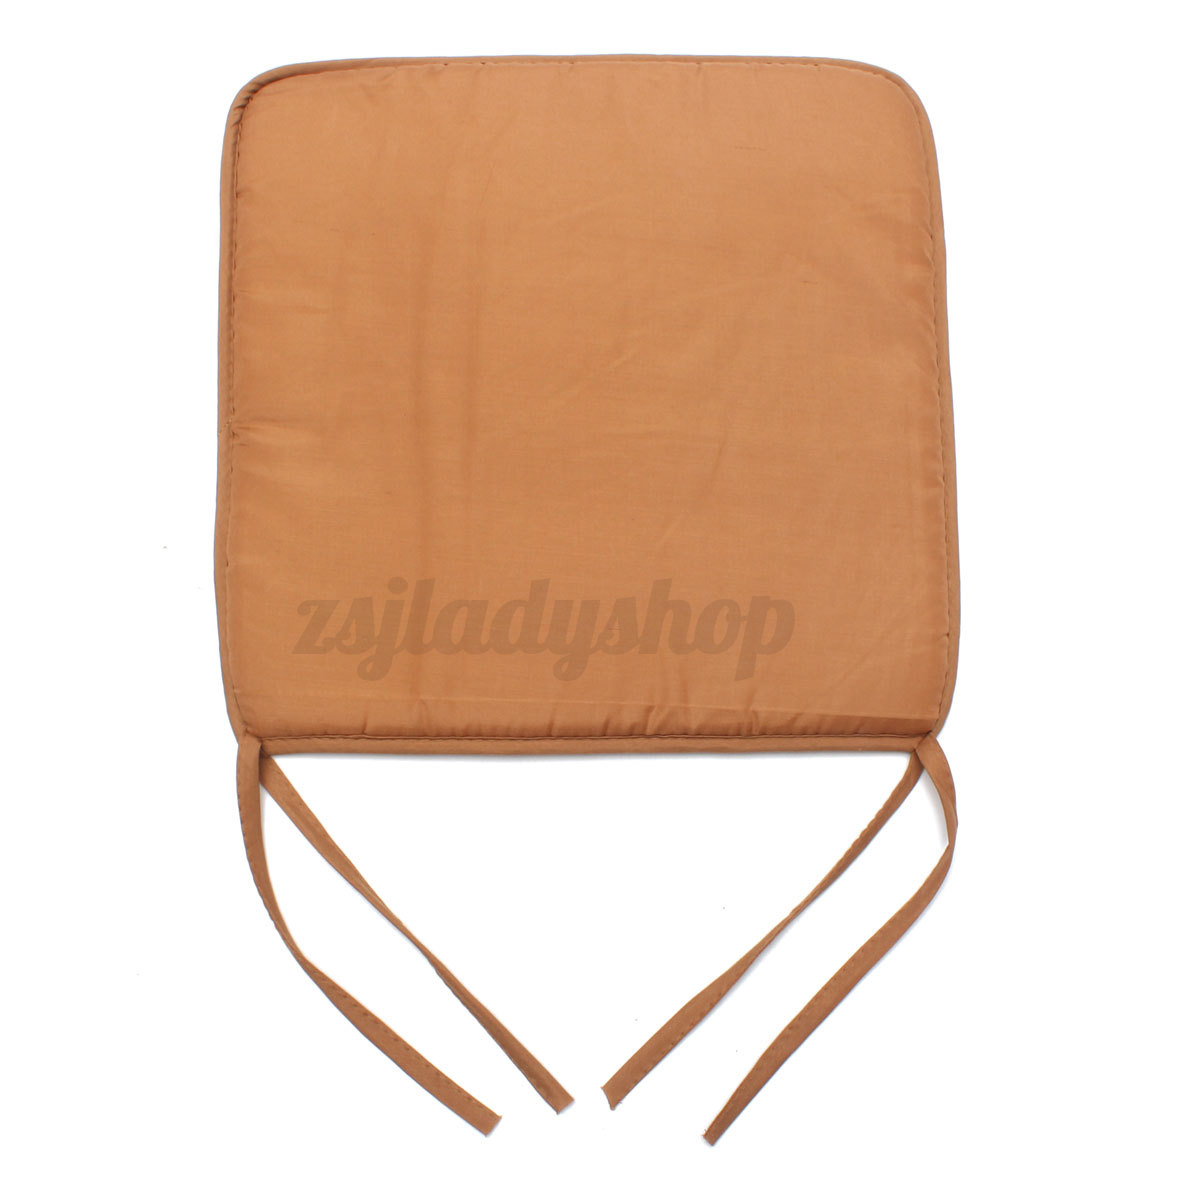 Soft Chair Cushion Seat Pads Removable Cover Dining Home  : DF82A78CA6C6164697B93797F60792C9C9668126CBC6CB9ED2CC261499CDD273CA669DD2689D4653CAD29ACFCA41C6569CCEC9CEC893BE56A01323 from www.ebay.com.au size 1200 x 1200 jpeg 98kB